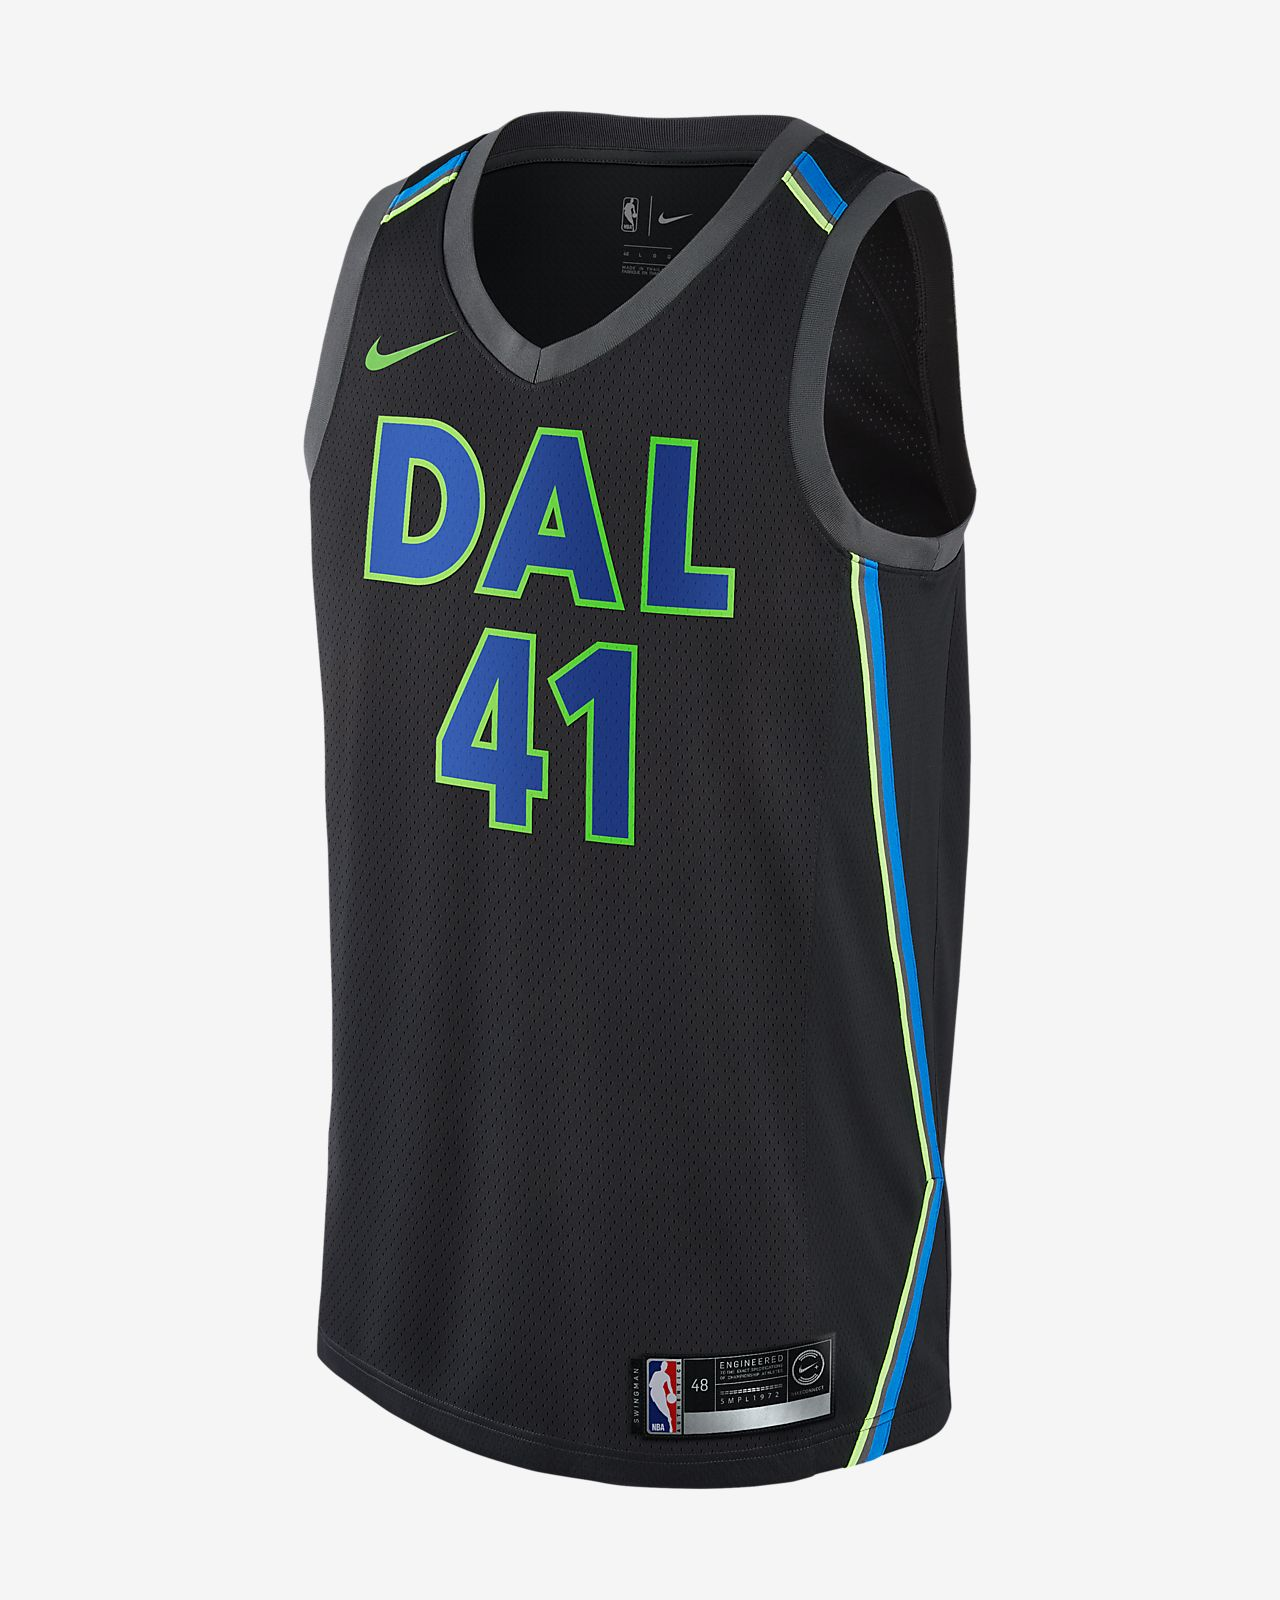 ... Camiseta conectada Nike NBA para hombre Dirk Nowitzki City Edition  Swingman Jersey (Dallas Mavericks) 436cc9900cf